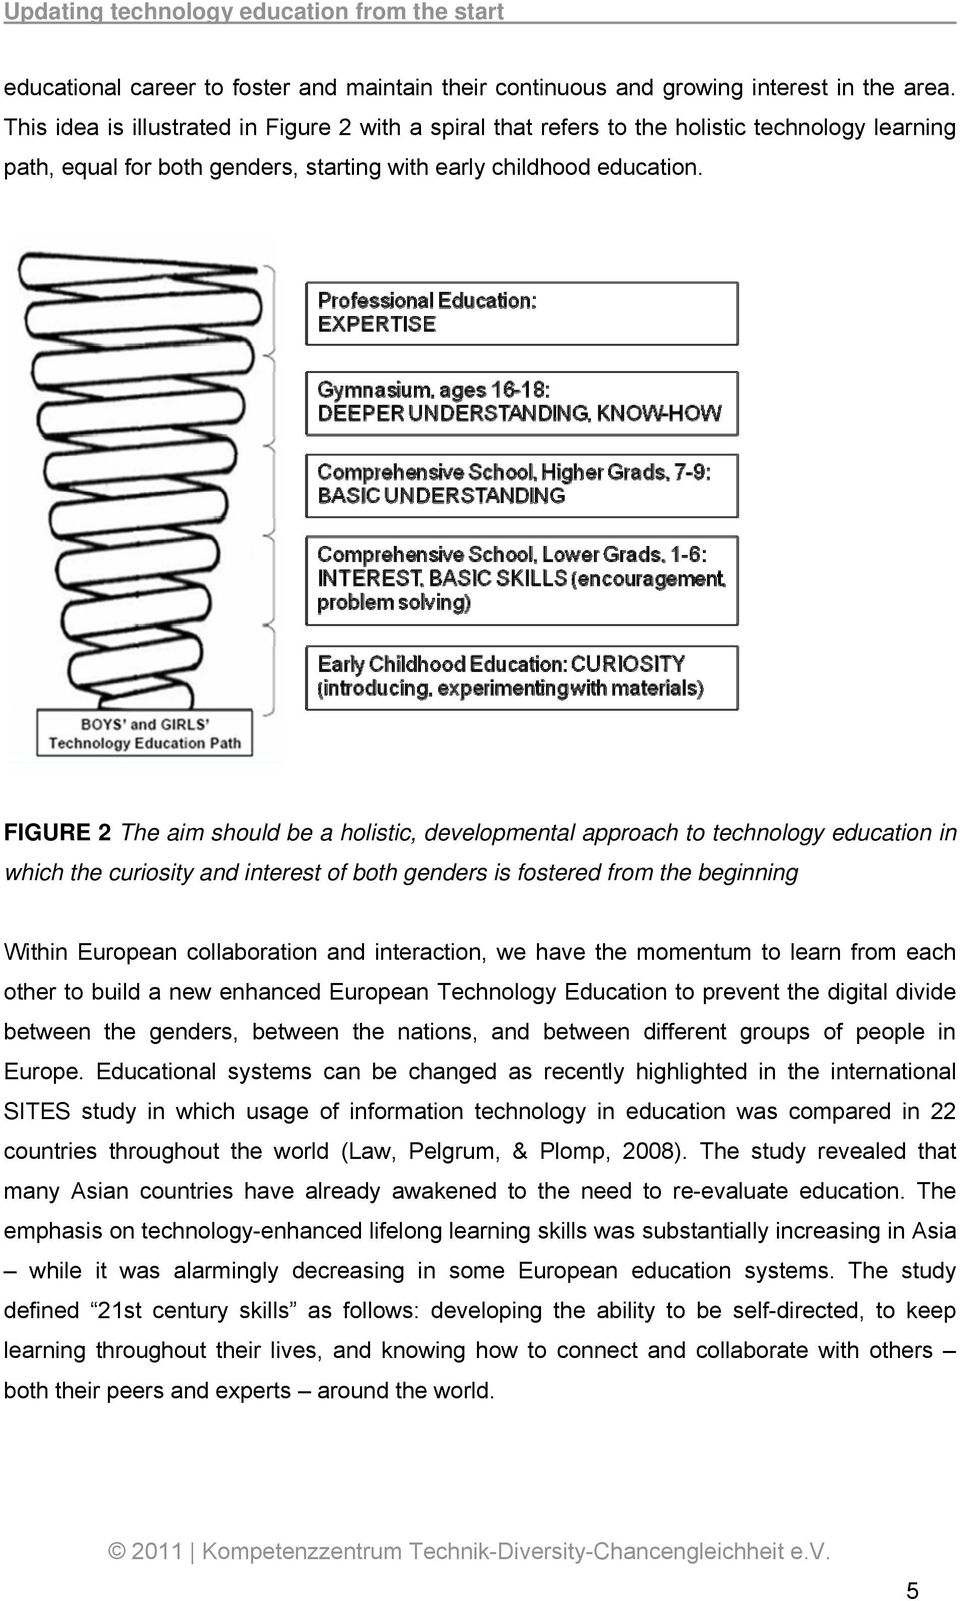 FIGURE 2 The aim should be a holistic, developmental approach to technology education in which the curiosity and interest of both genders is fostered from the beginning Within European collaboration